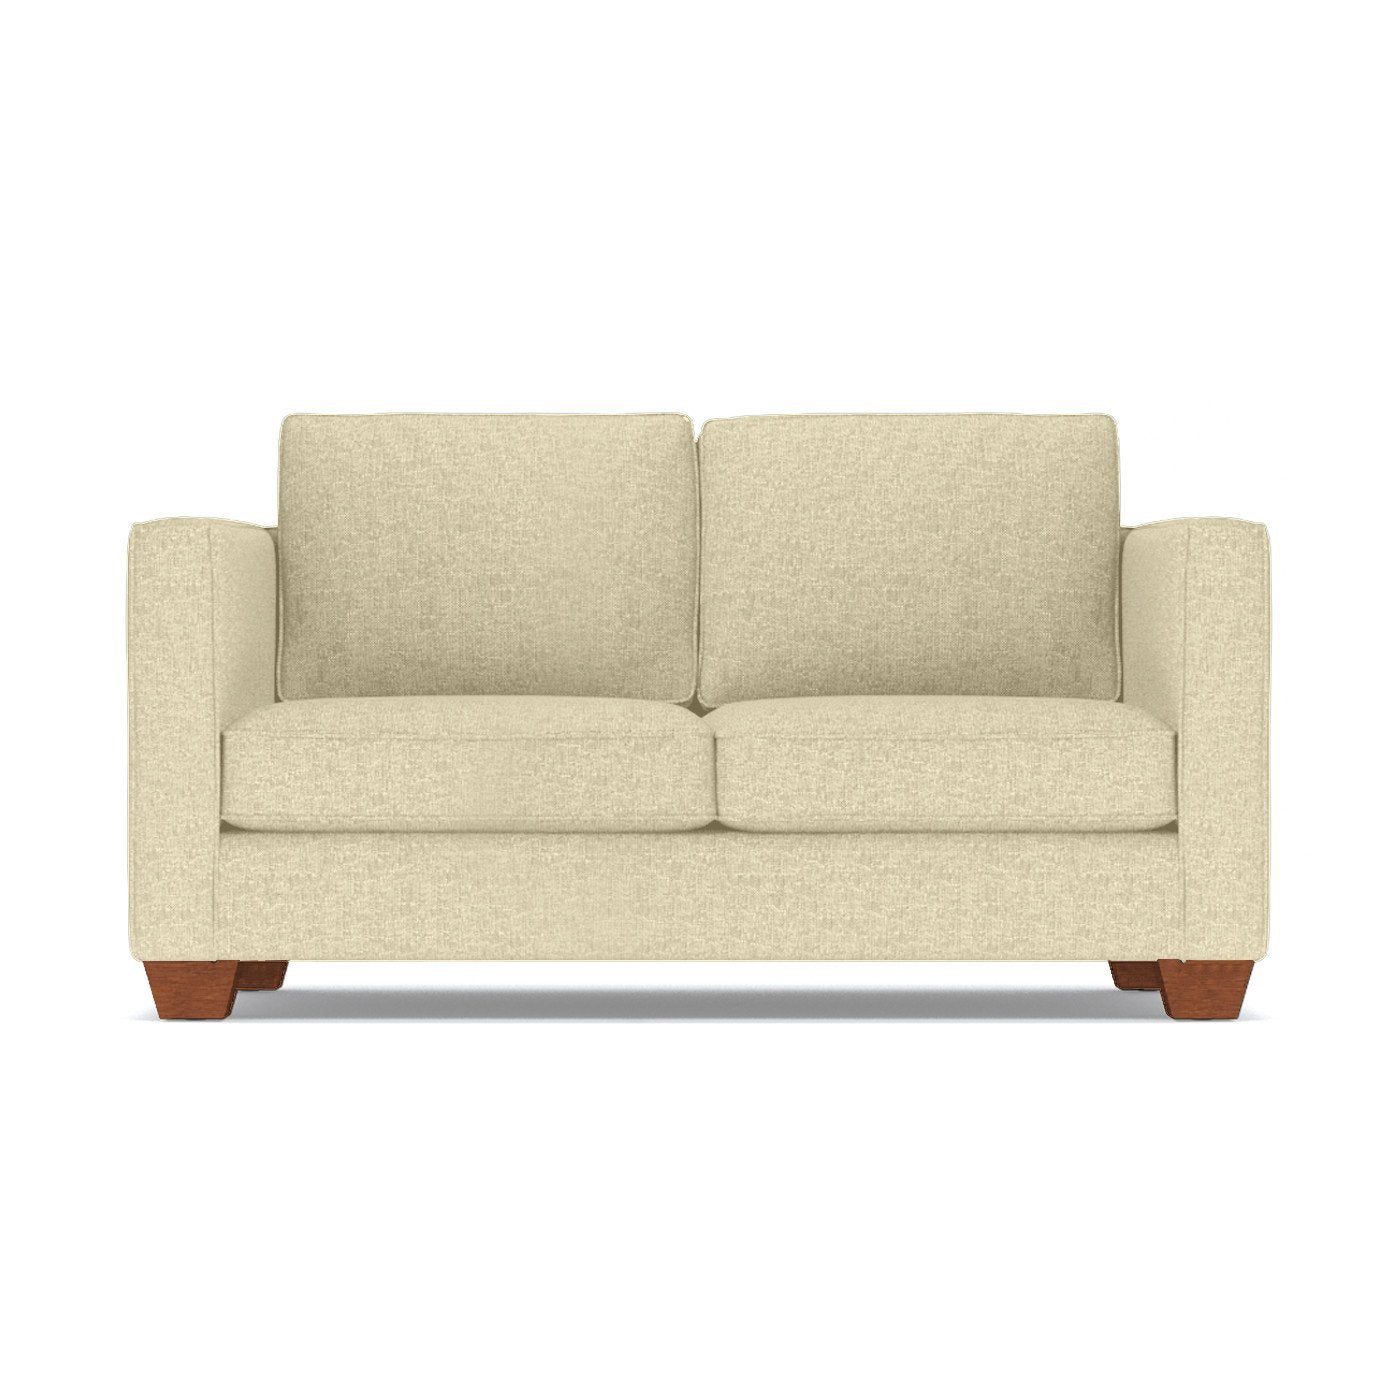 Catalina Apartment Size Sleeper Sofa